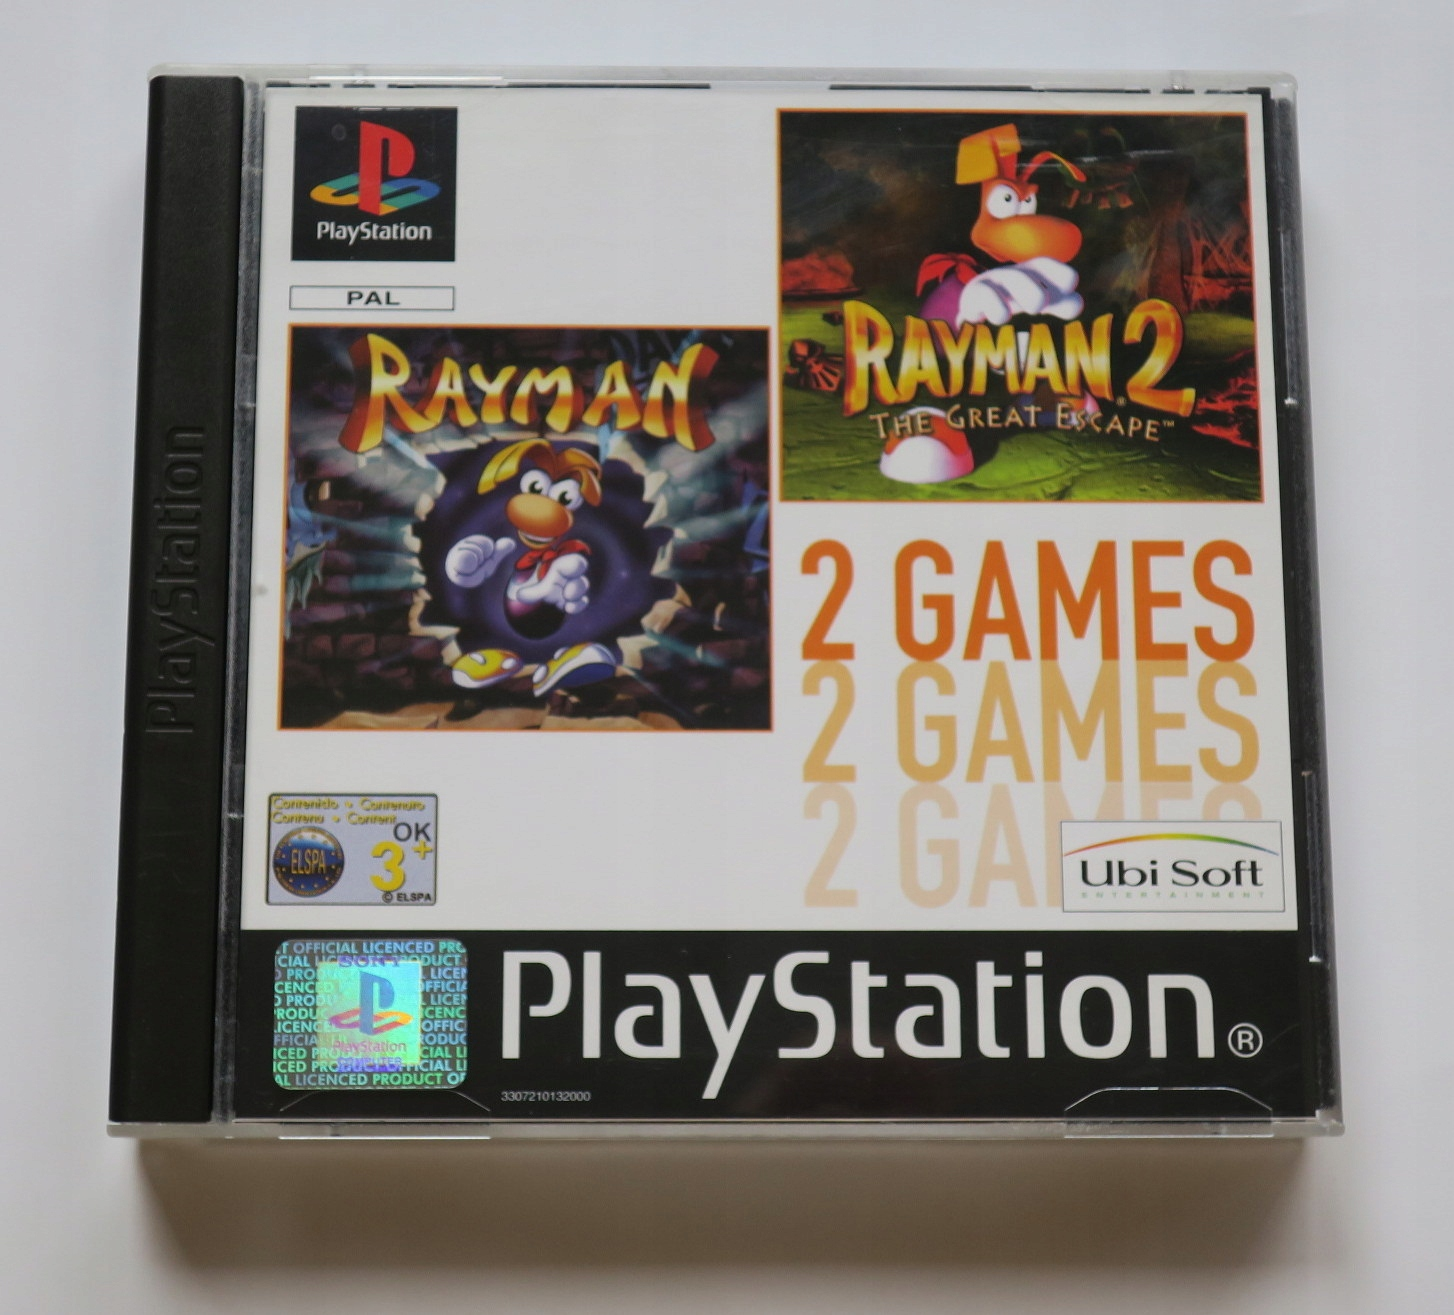 2games rayman 1 - Na tropie historii edycji gier - 2 Games / Twin Pack / Double Pack